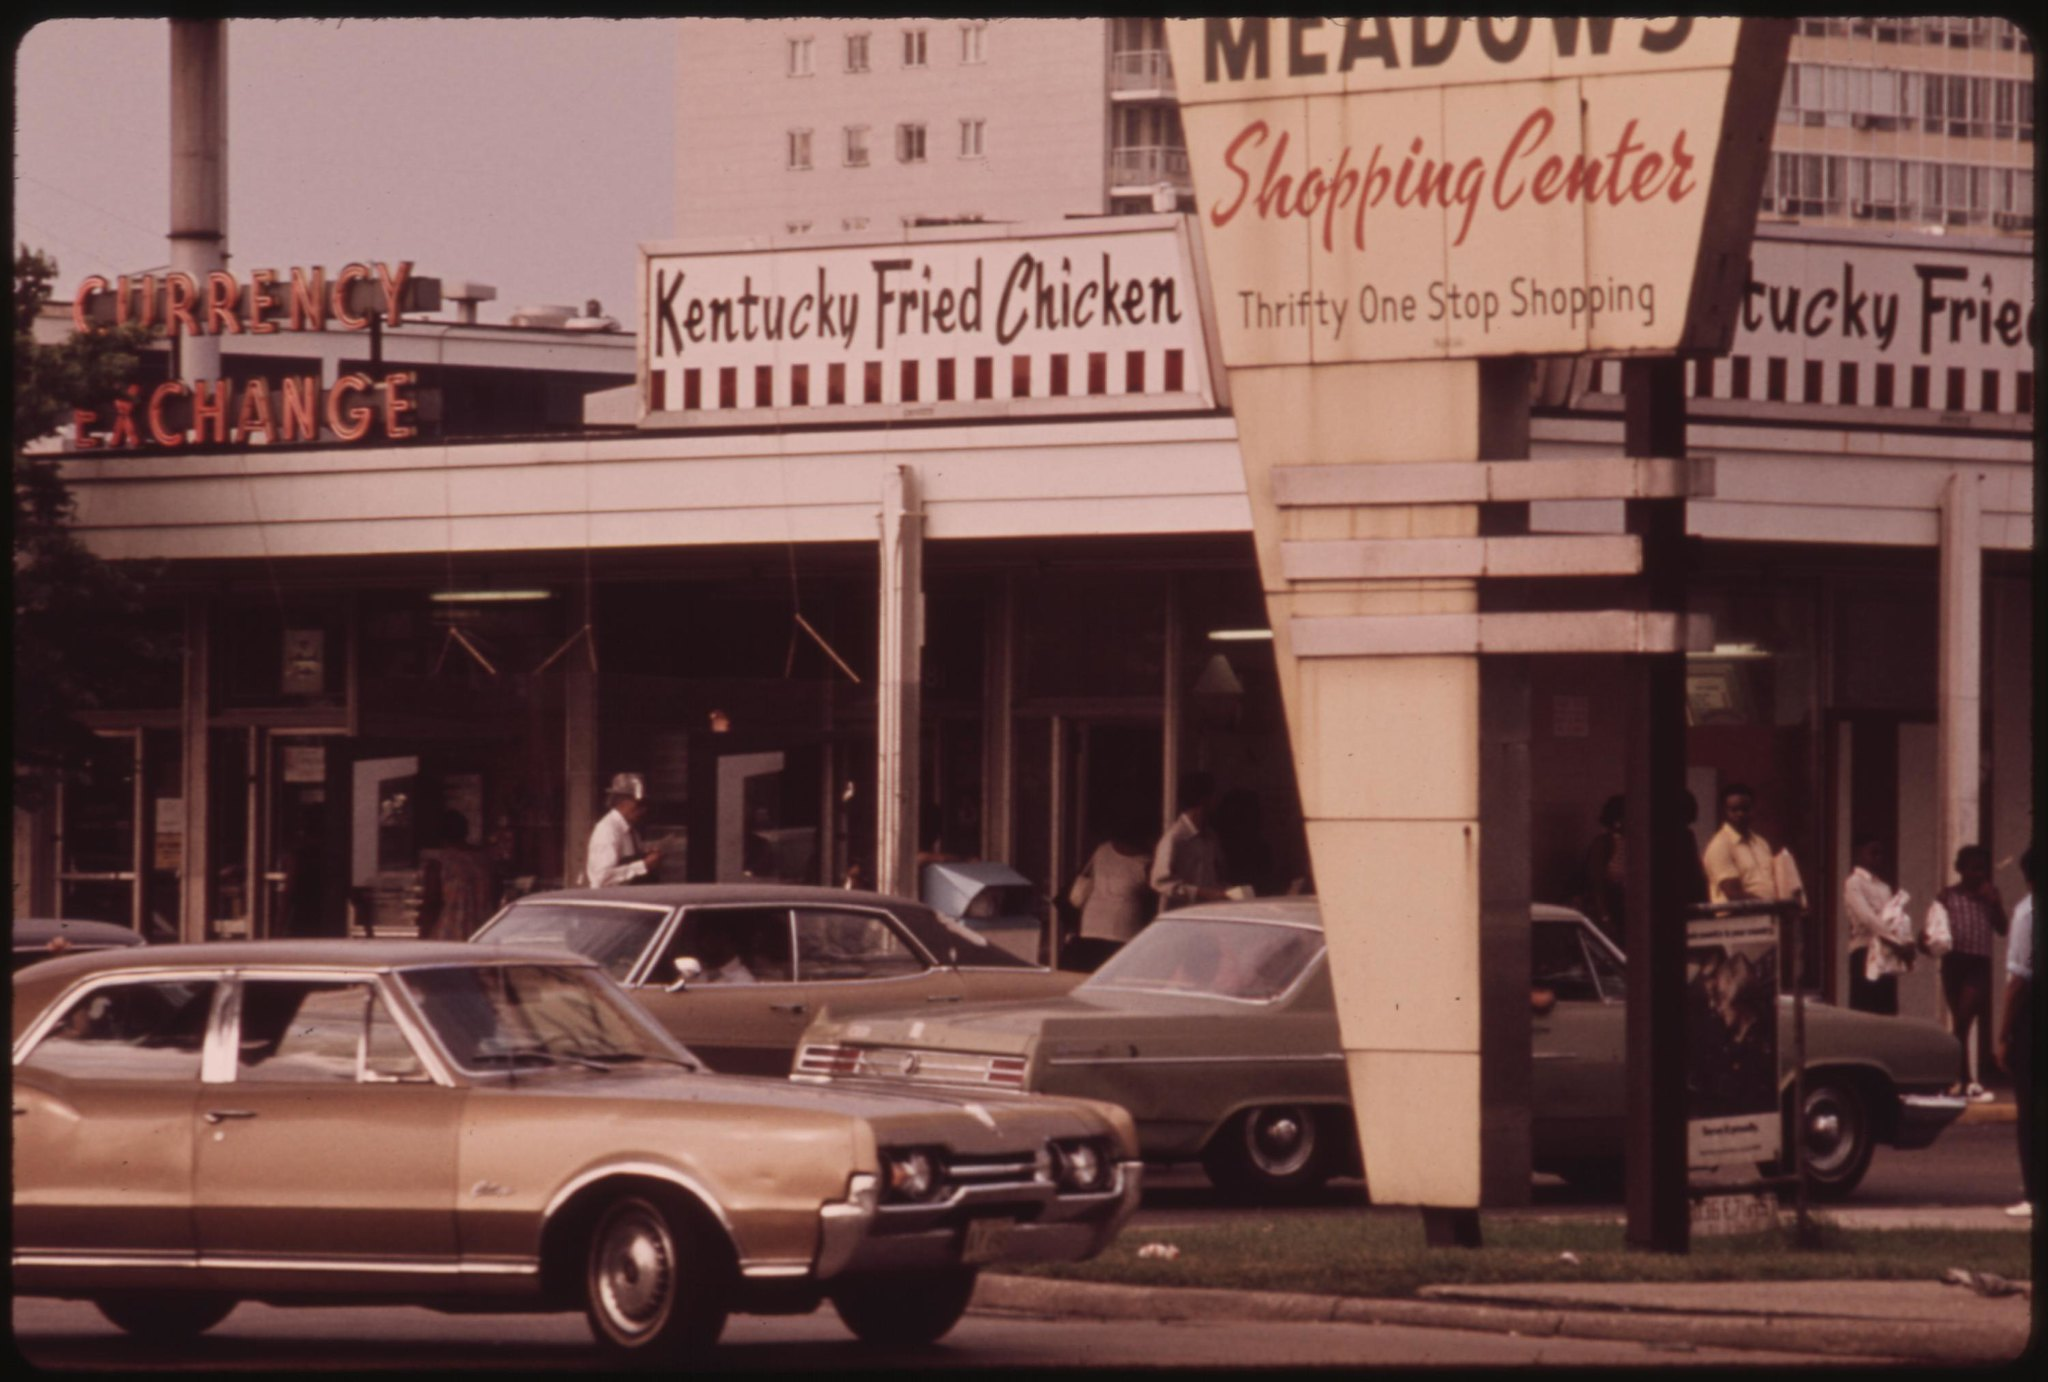 Kentucky Fried Chicken old picture